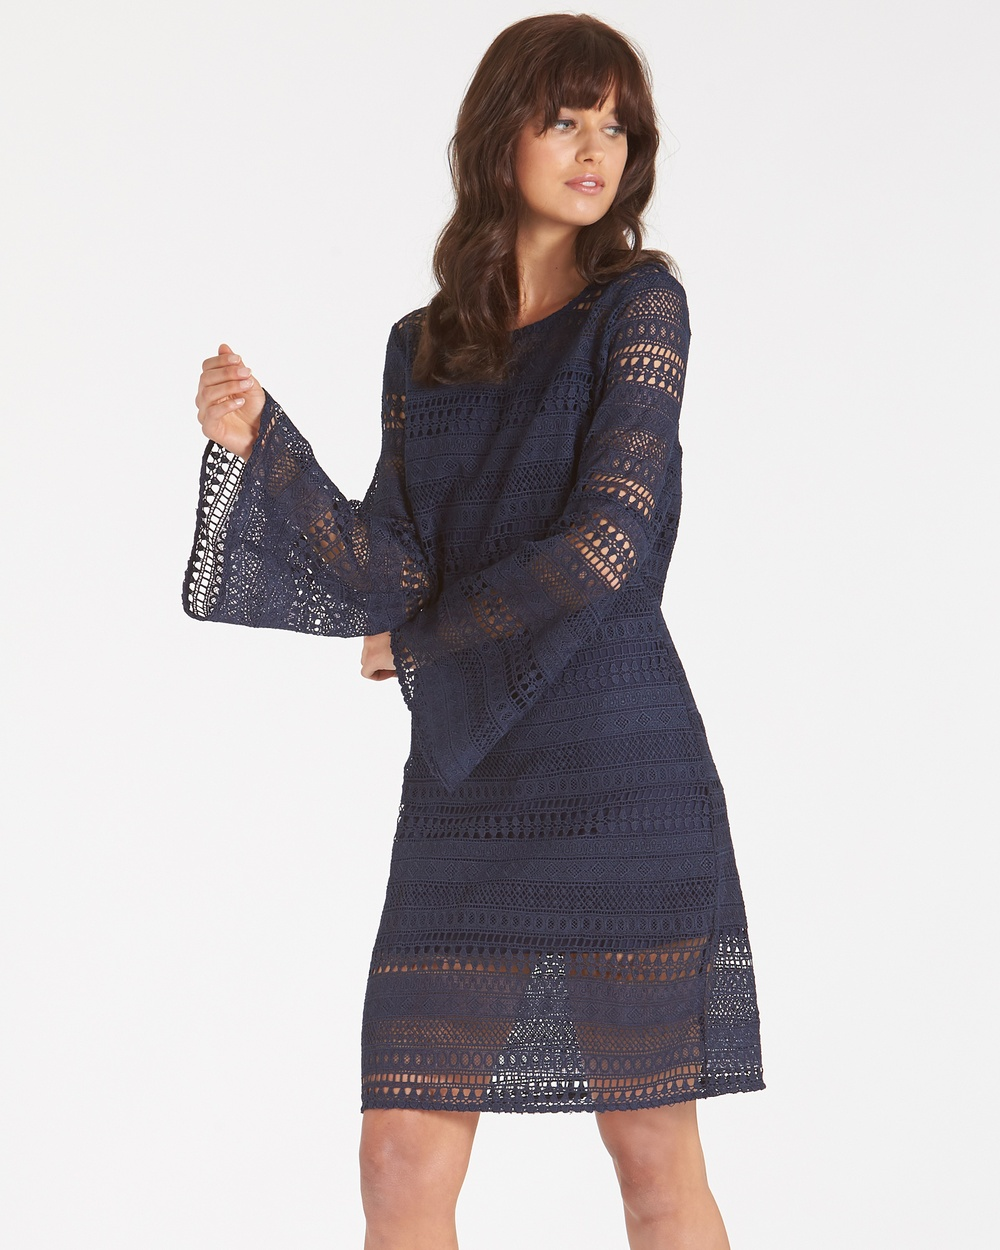 Amelius Brielle Lace Dress Dresses Navy Brielle Lace Dress